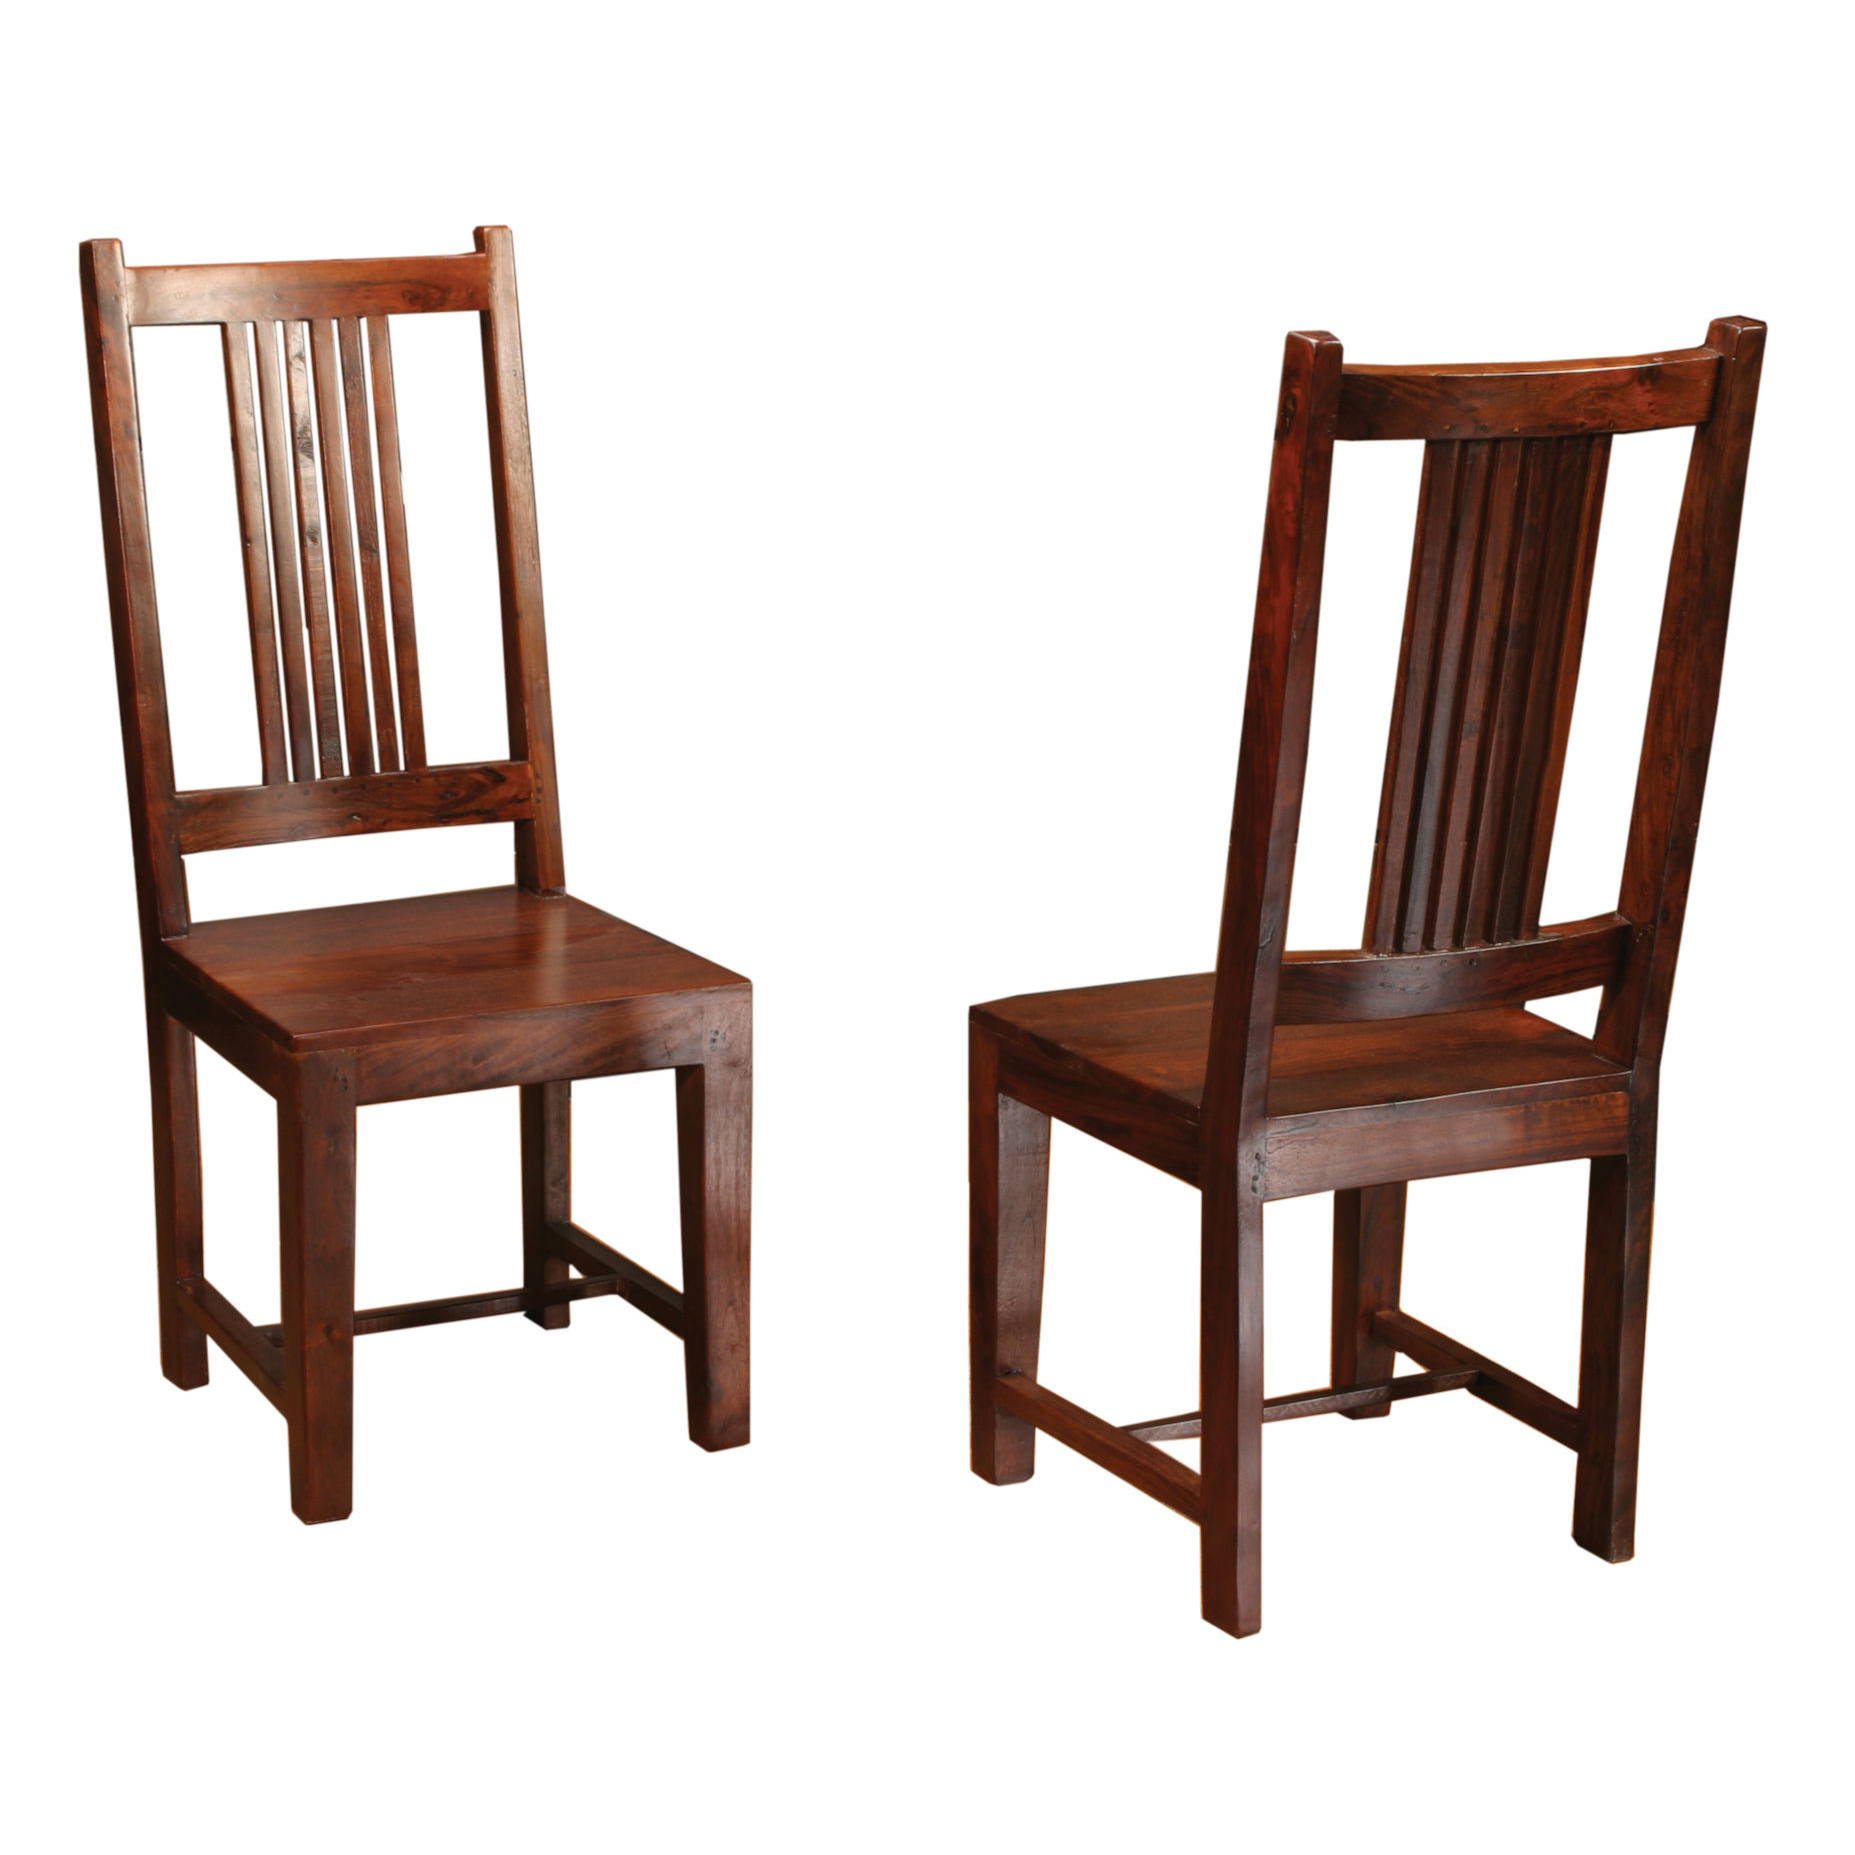 Image of: Unfinished Wood Dining Chairs Ideas